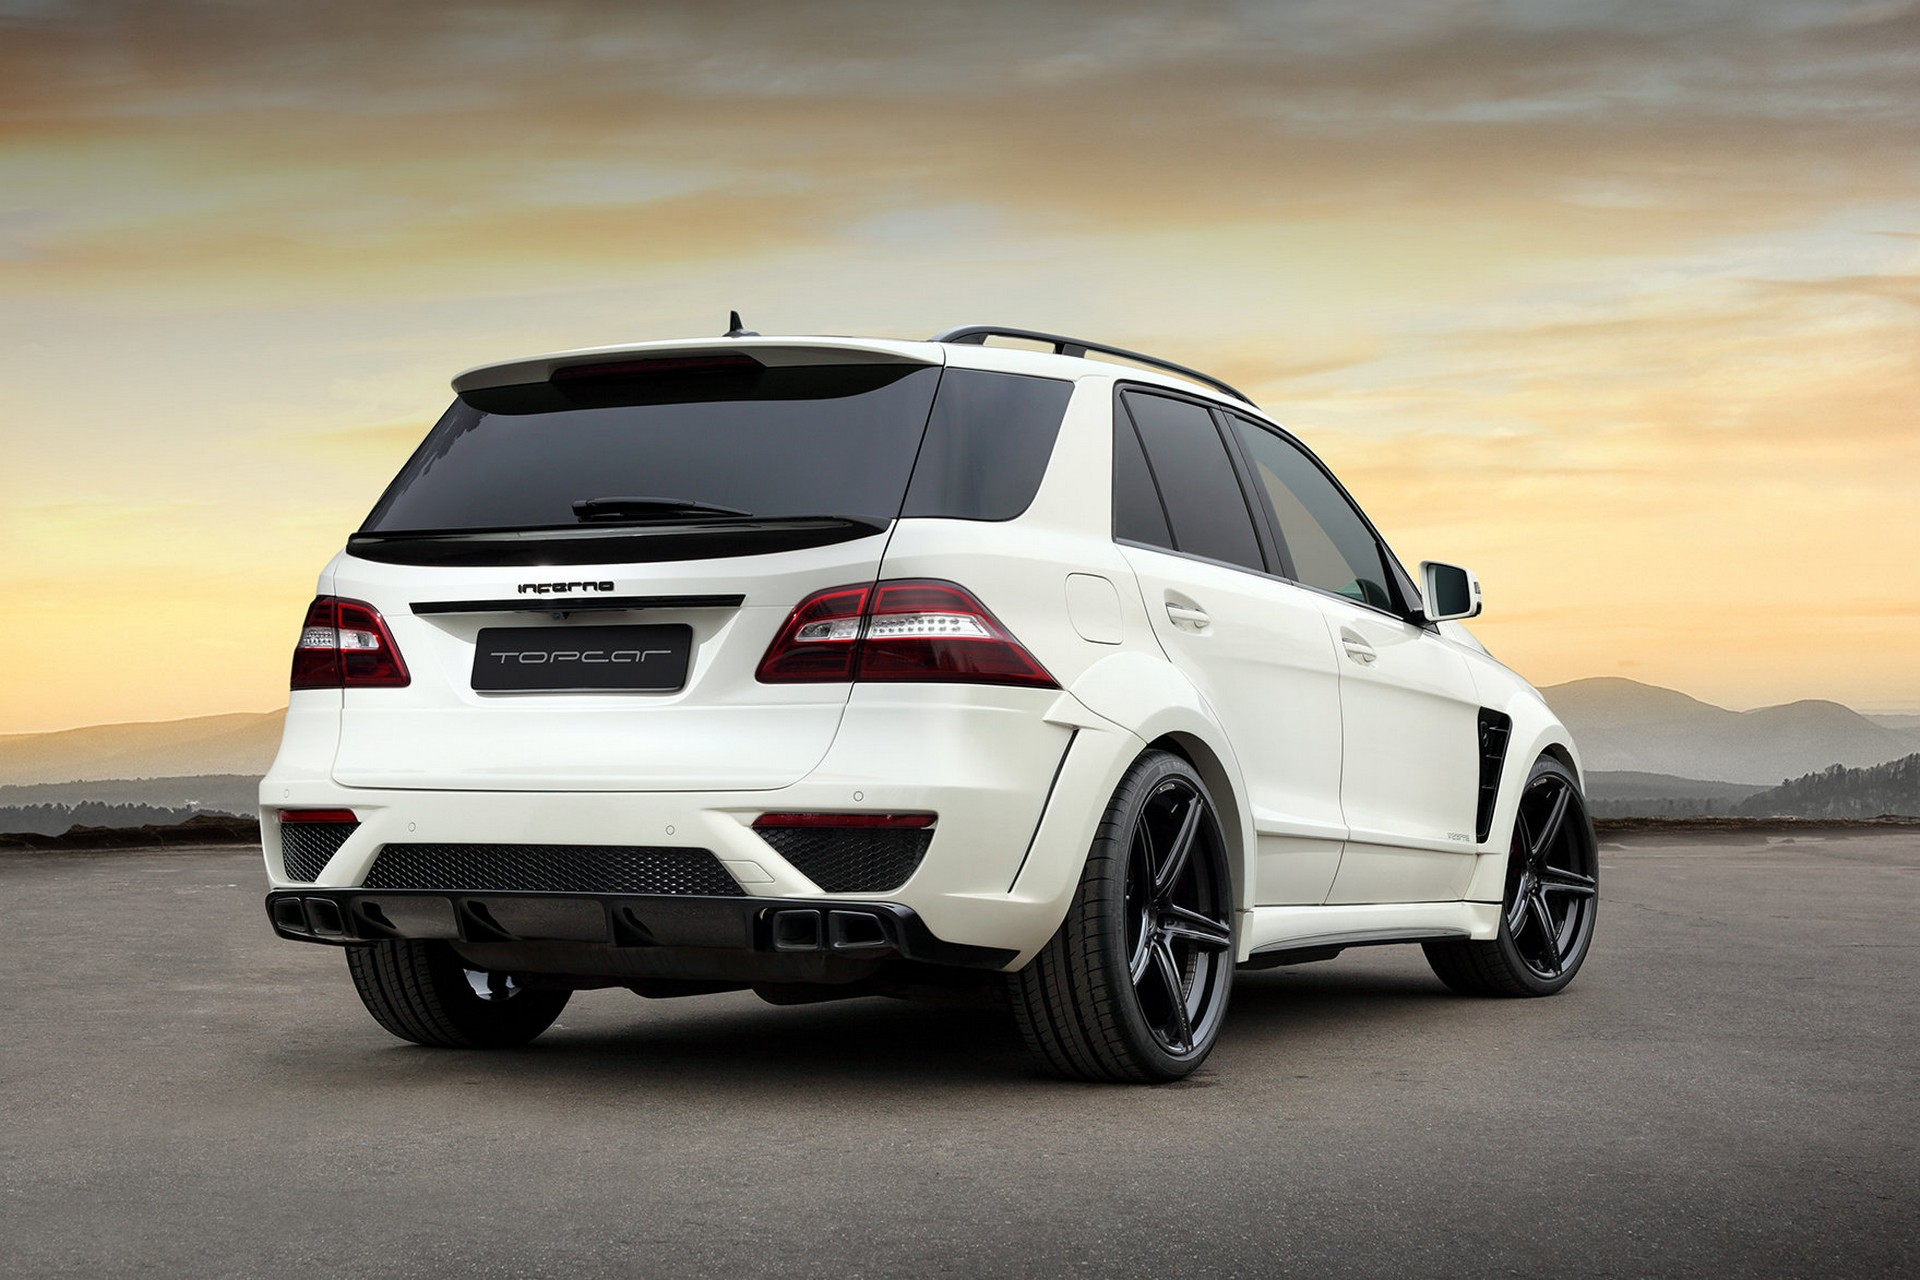 mercedes benz ml w166 6 3 amg inferno white topcar